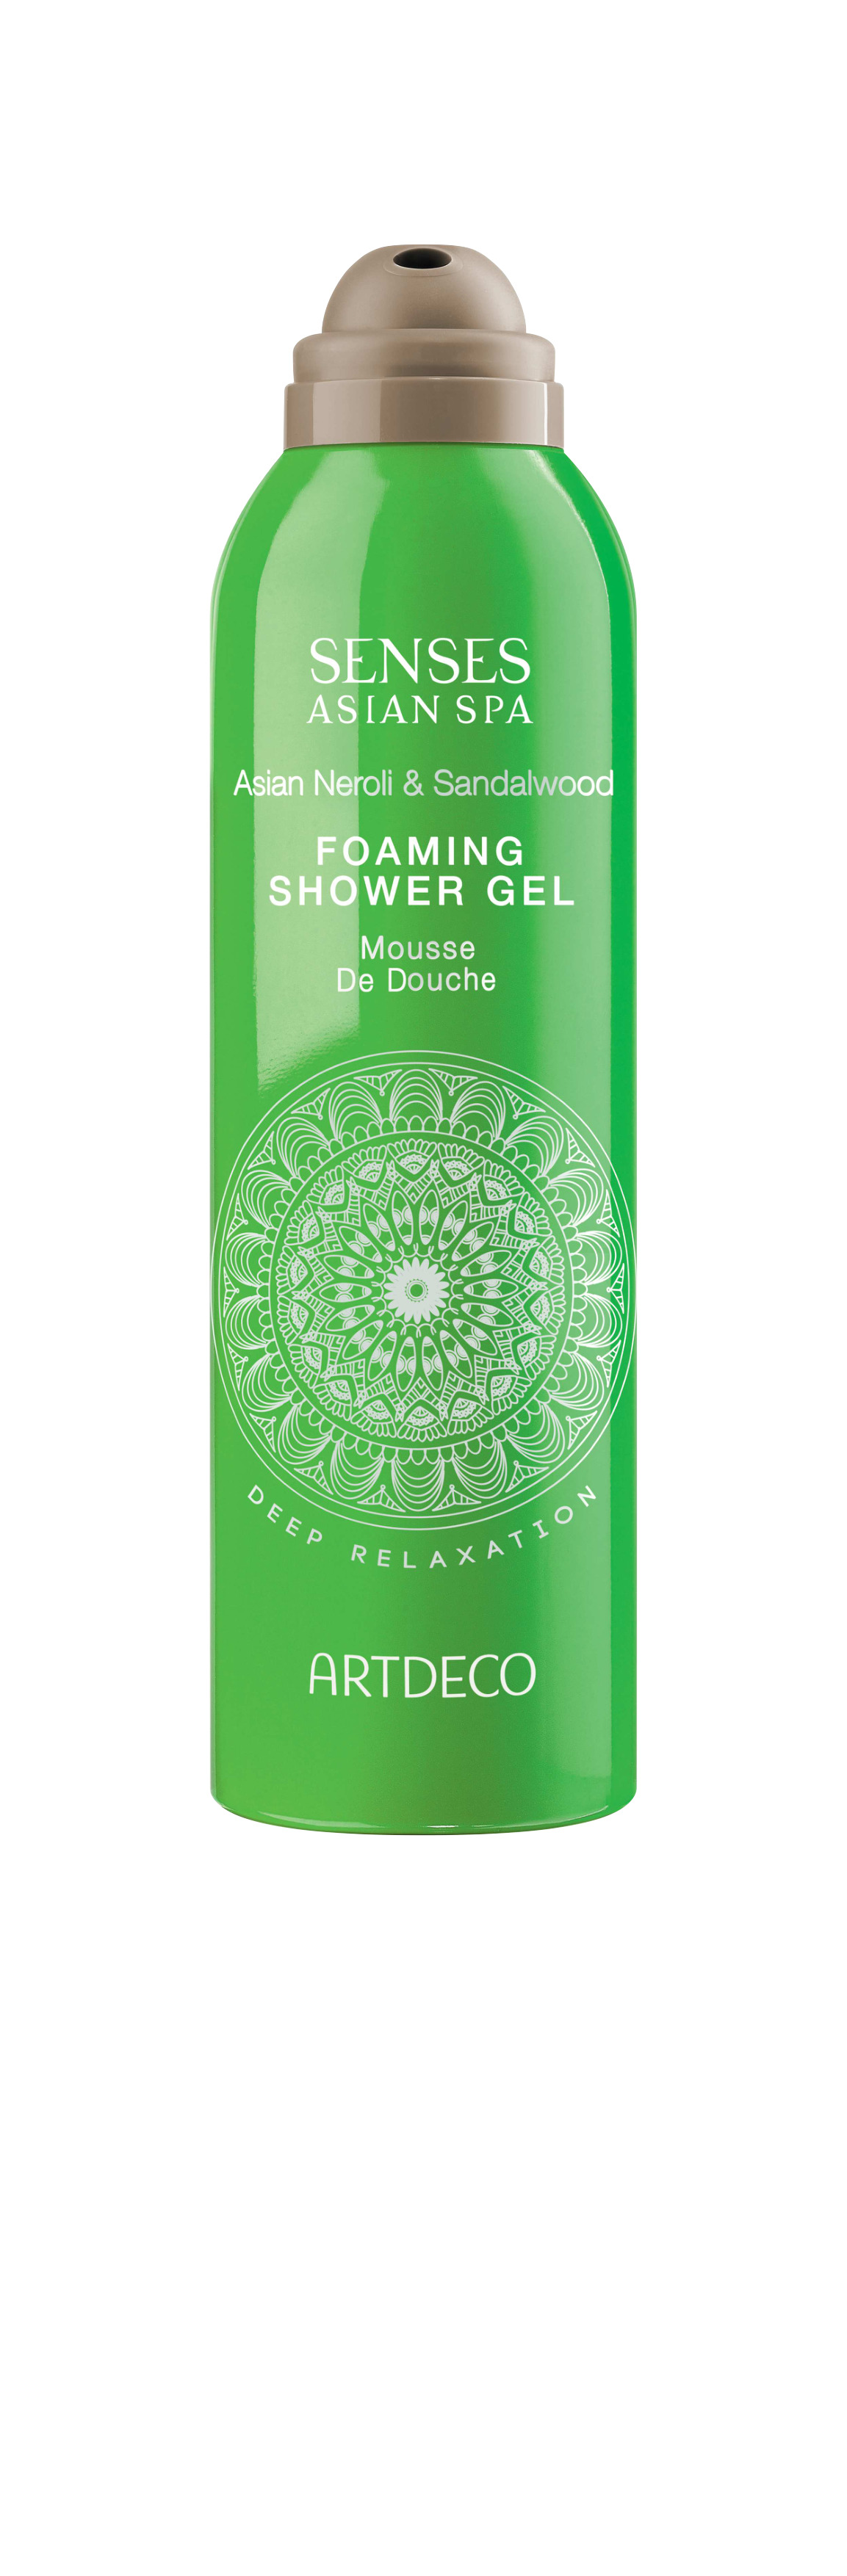 Artdeco гель-пена для душа Foaming shower gel, deep relaxation, 200 мл скраб artdeco deep exfoliating foot scrub deep relaxation